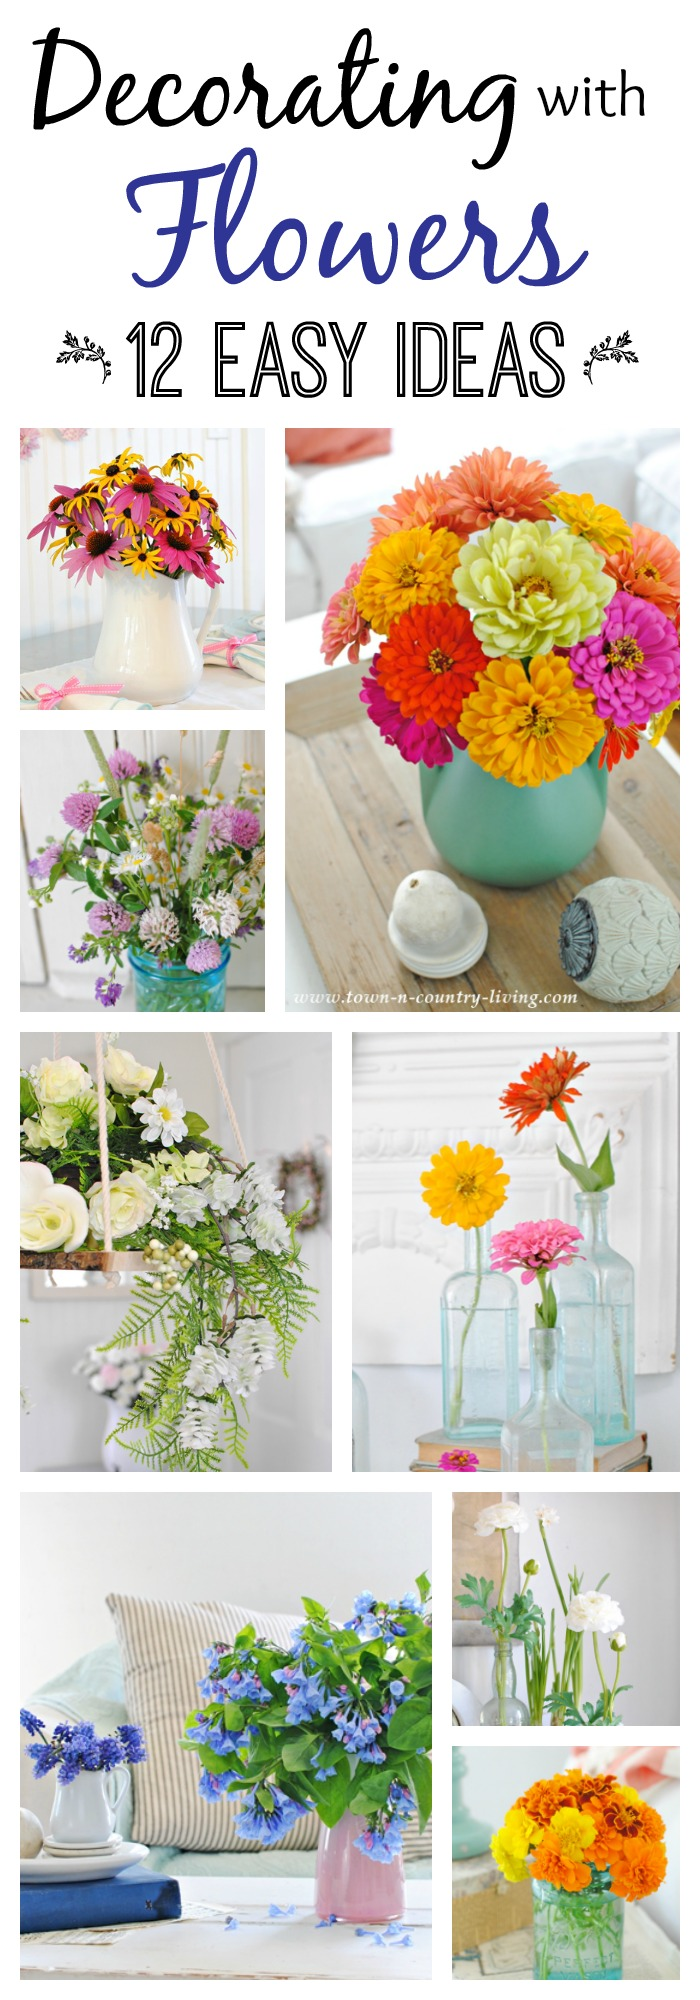 Decorating With Flowers decorating with flowers: 12 easy ideas - town & country living